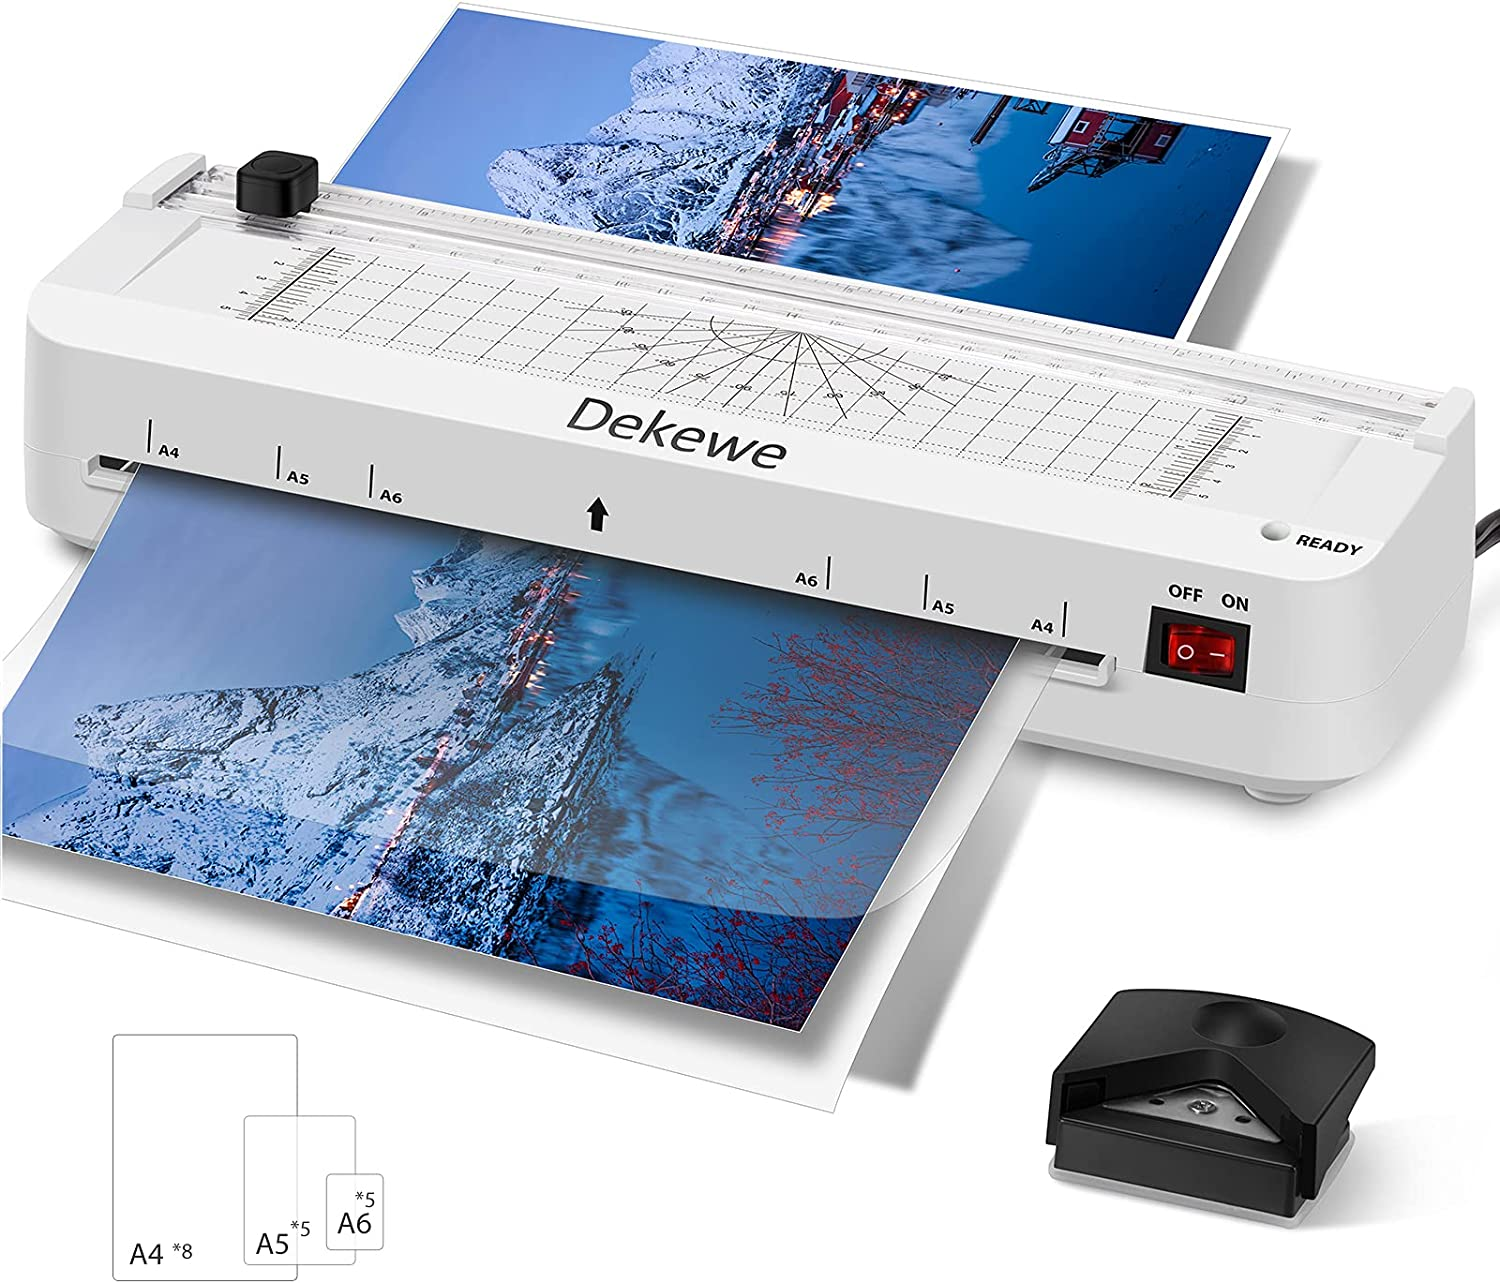 Laminator Machine, Dekewe A4 Laminating Machine, 4 in 1 Thermal Laminator with 18 Laminating Sheets, Paper Trimmer and Corner Rounder for Home Office School Use - White